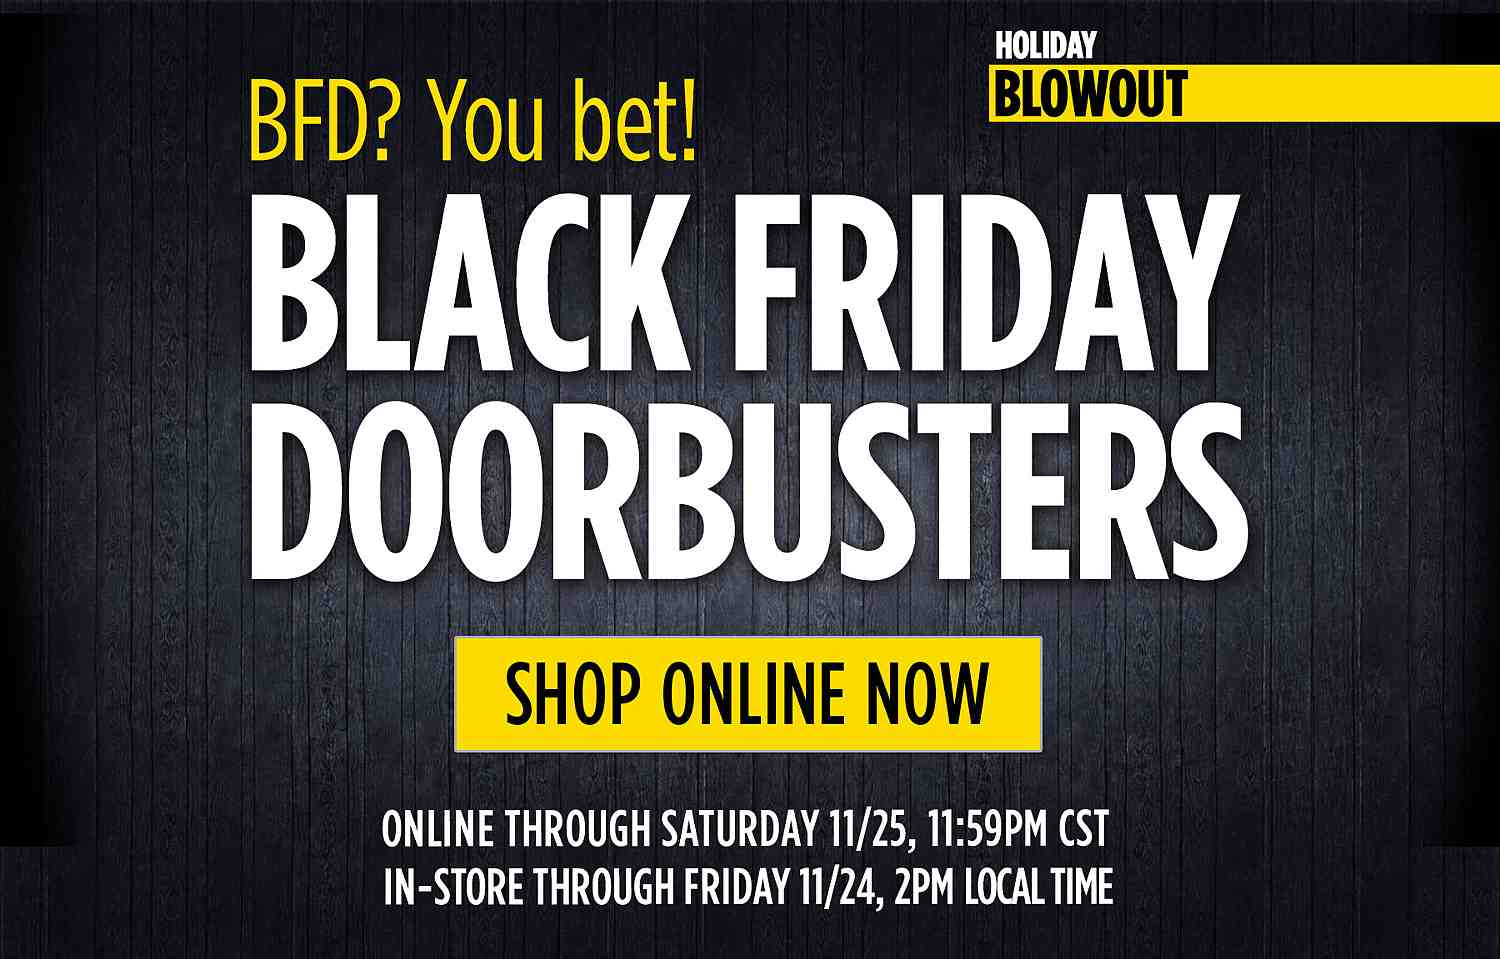 BFD? You Bet! Black Friday Doorbusters Shop Now! Black Friday Doorbusters Online NOW - Online through Saturday 11:59pm CST In-store through Friday 2pm local time